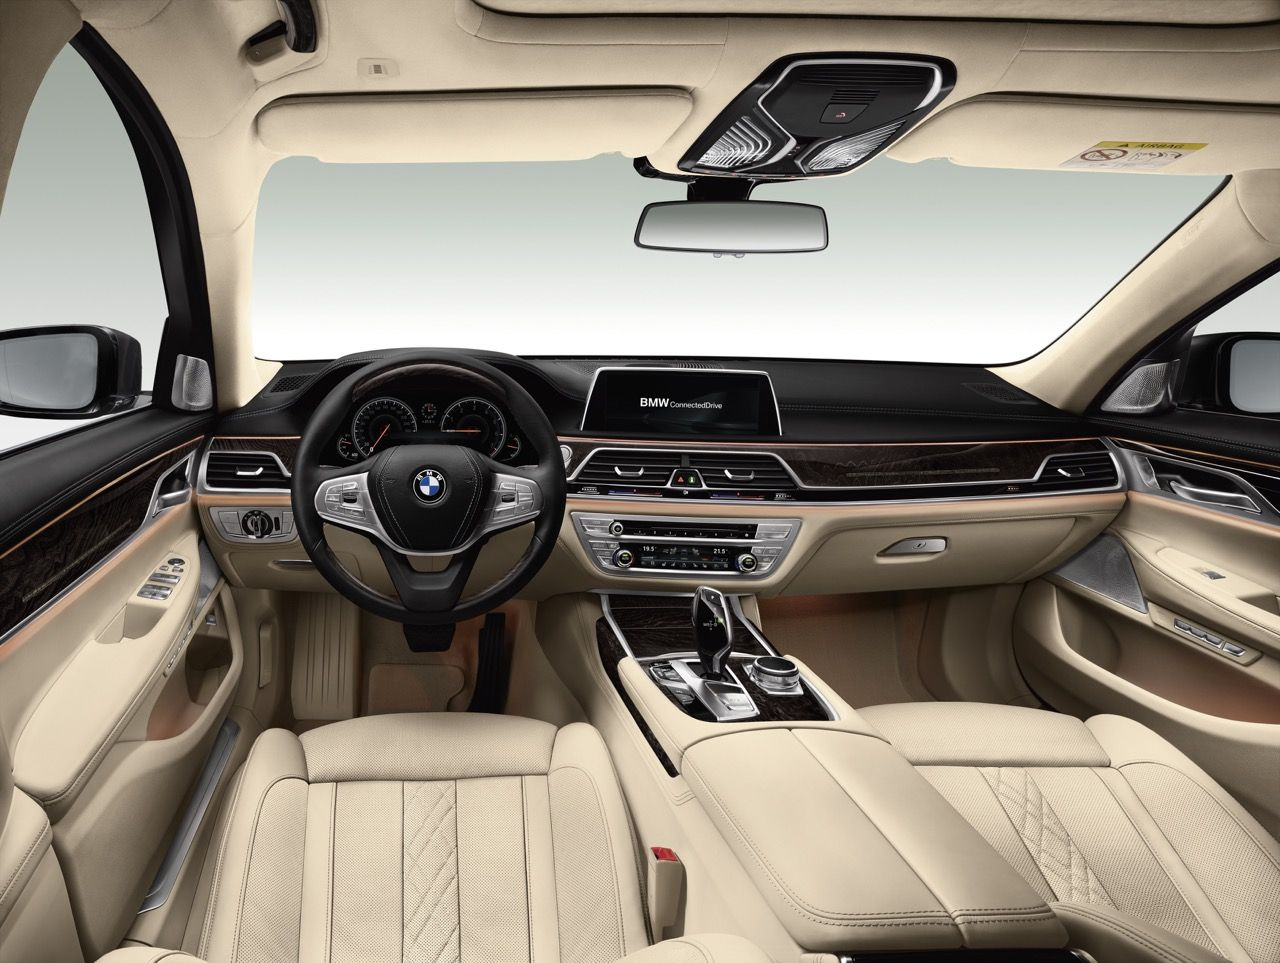 Bmw Hd Wallpapers 1080p Auto Parts Interior View Bmw Autos Vehicles Information Motor Cars Next Bmw G30 Brand New Model Of 2017 Bmw 7 Bmw Bmw 750 Li